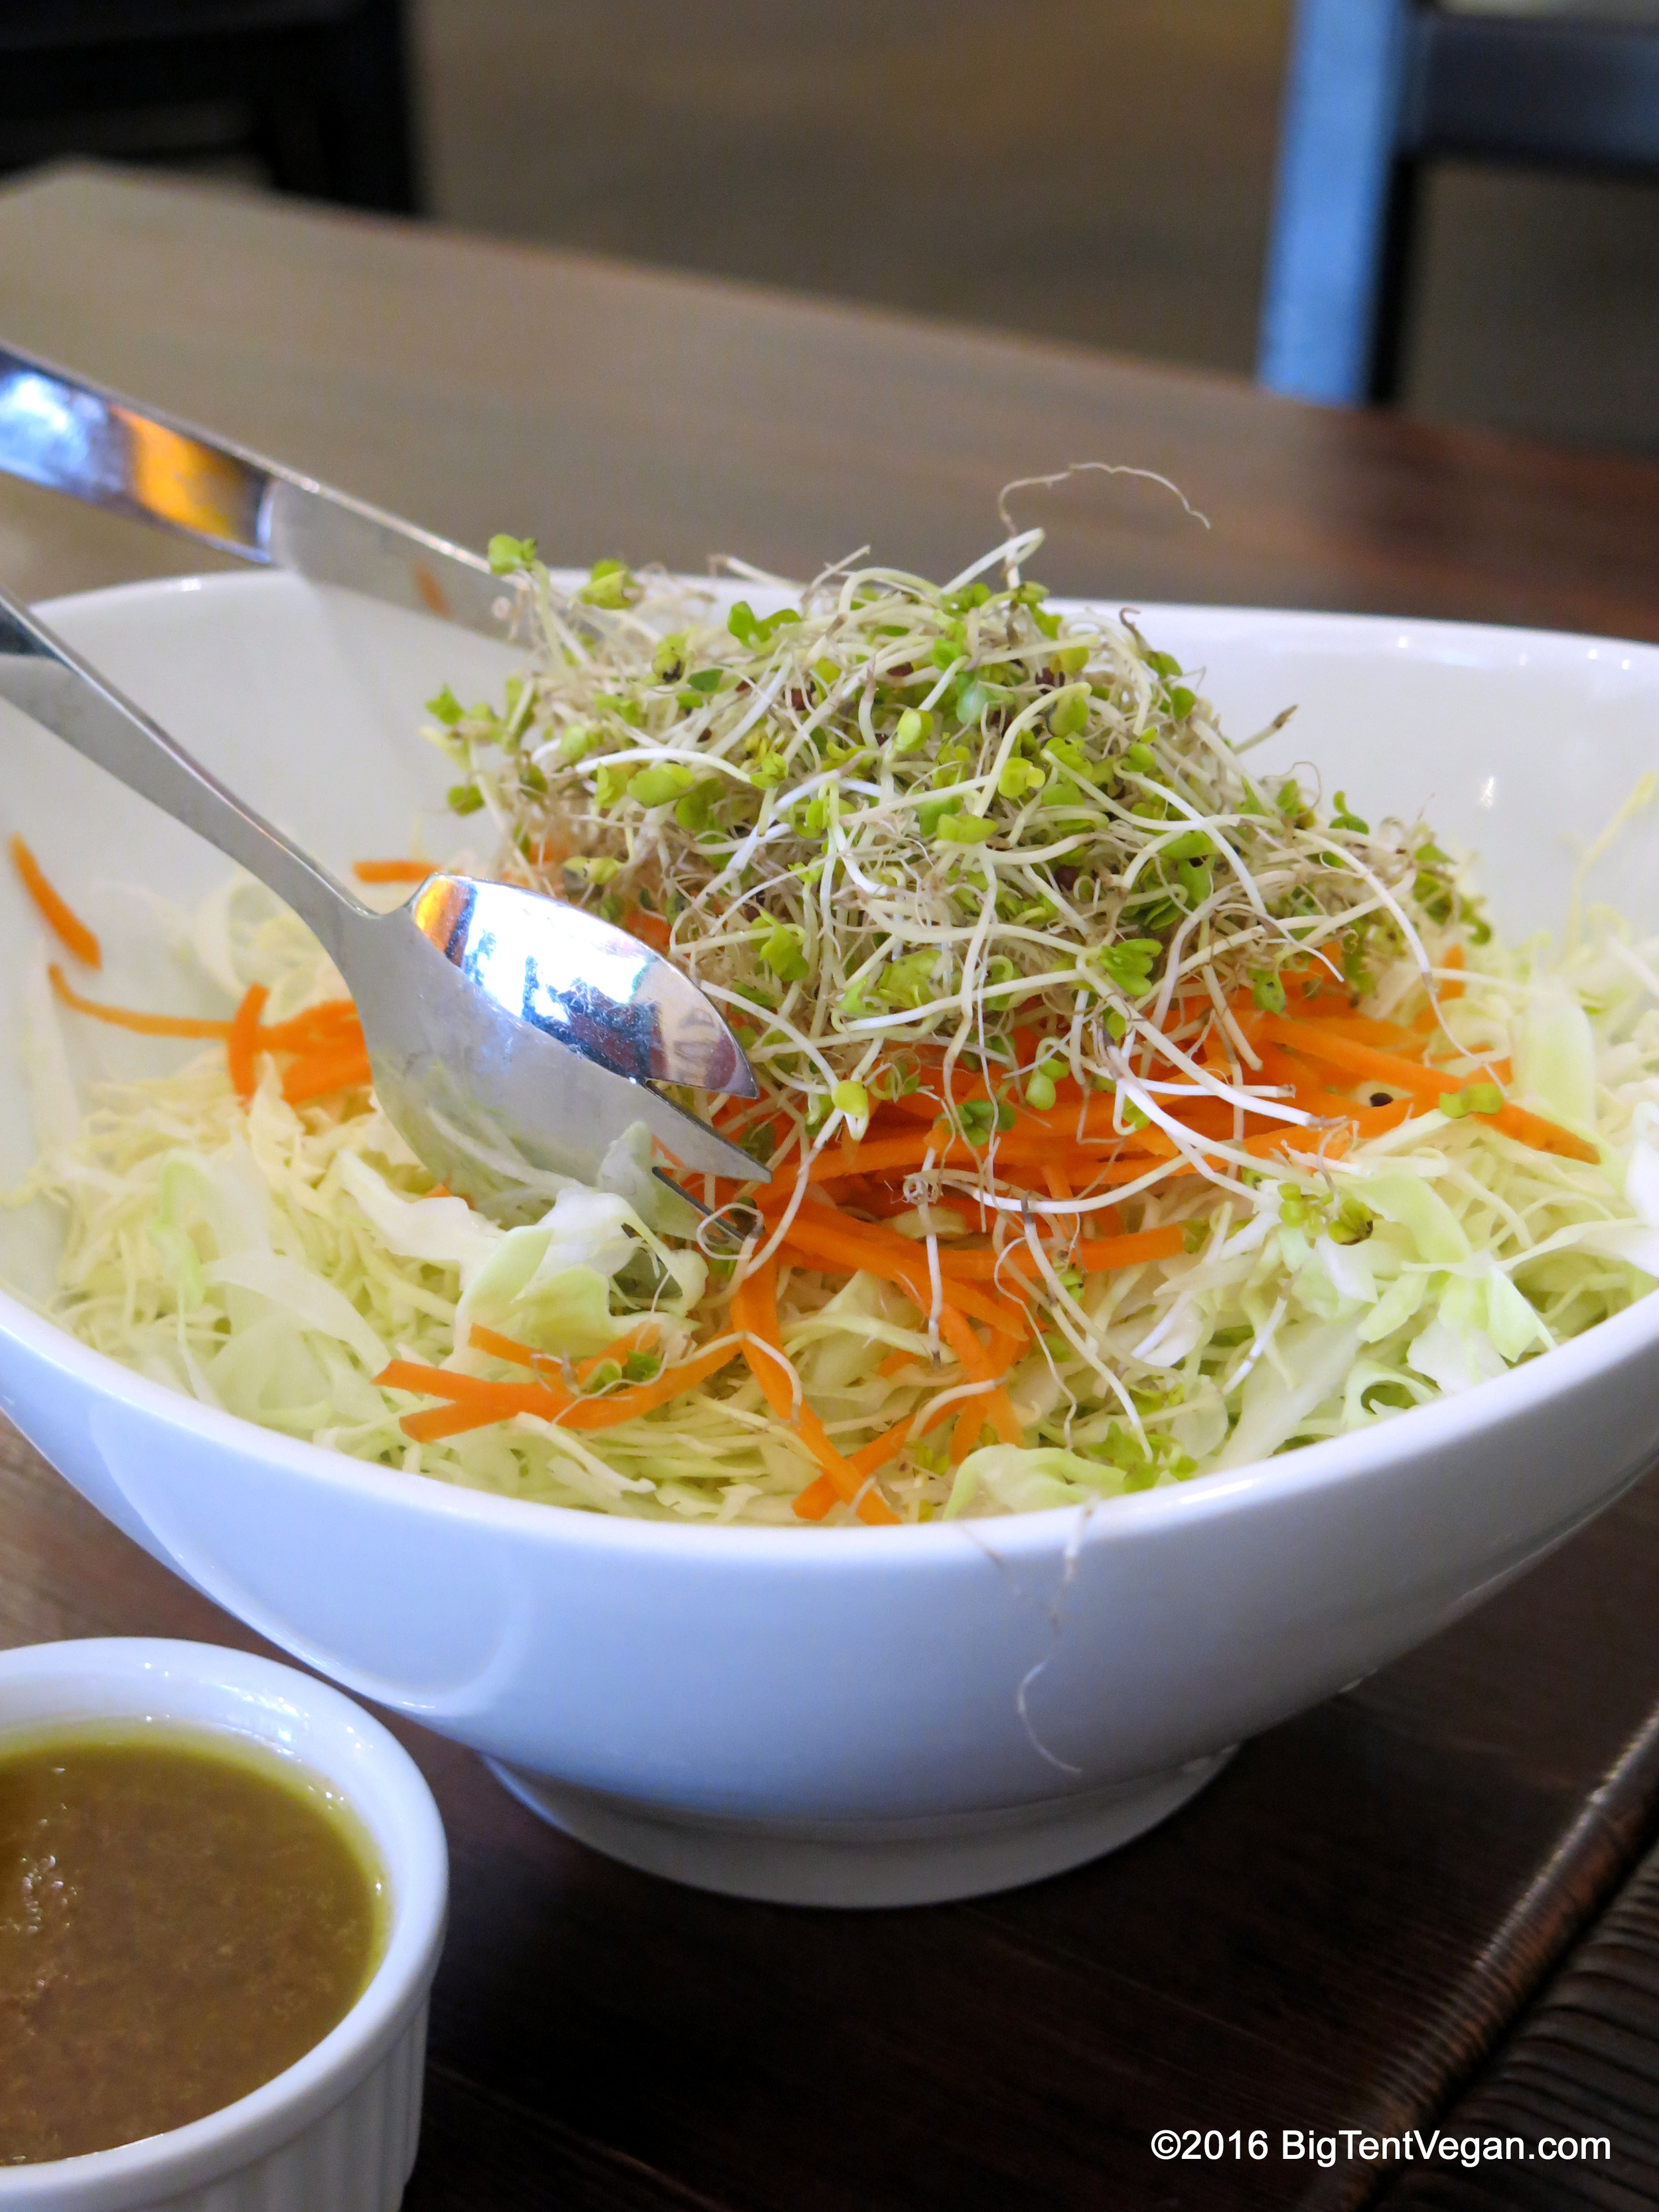 Angel Hair Salad with Thinly Shaved Cabbage and Carrots with Sprouts. Served with their Housemade Garlic-Sesame Dressing (Gluten-free available upon request)...delicious!